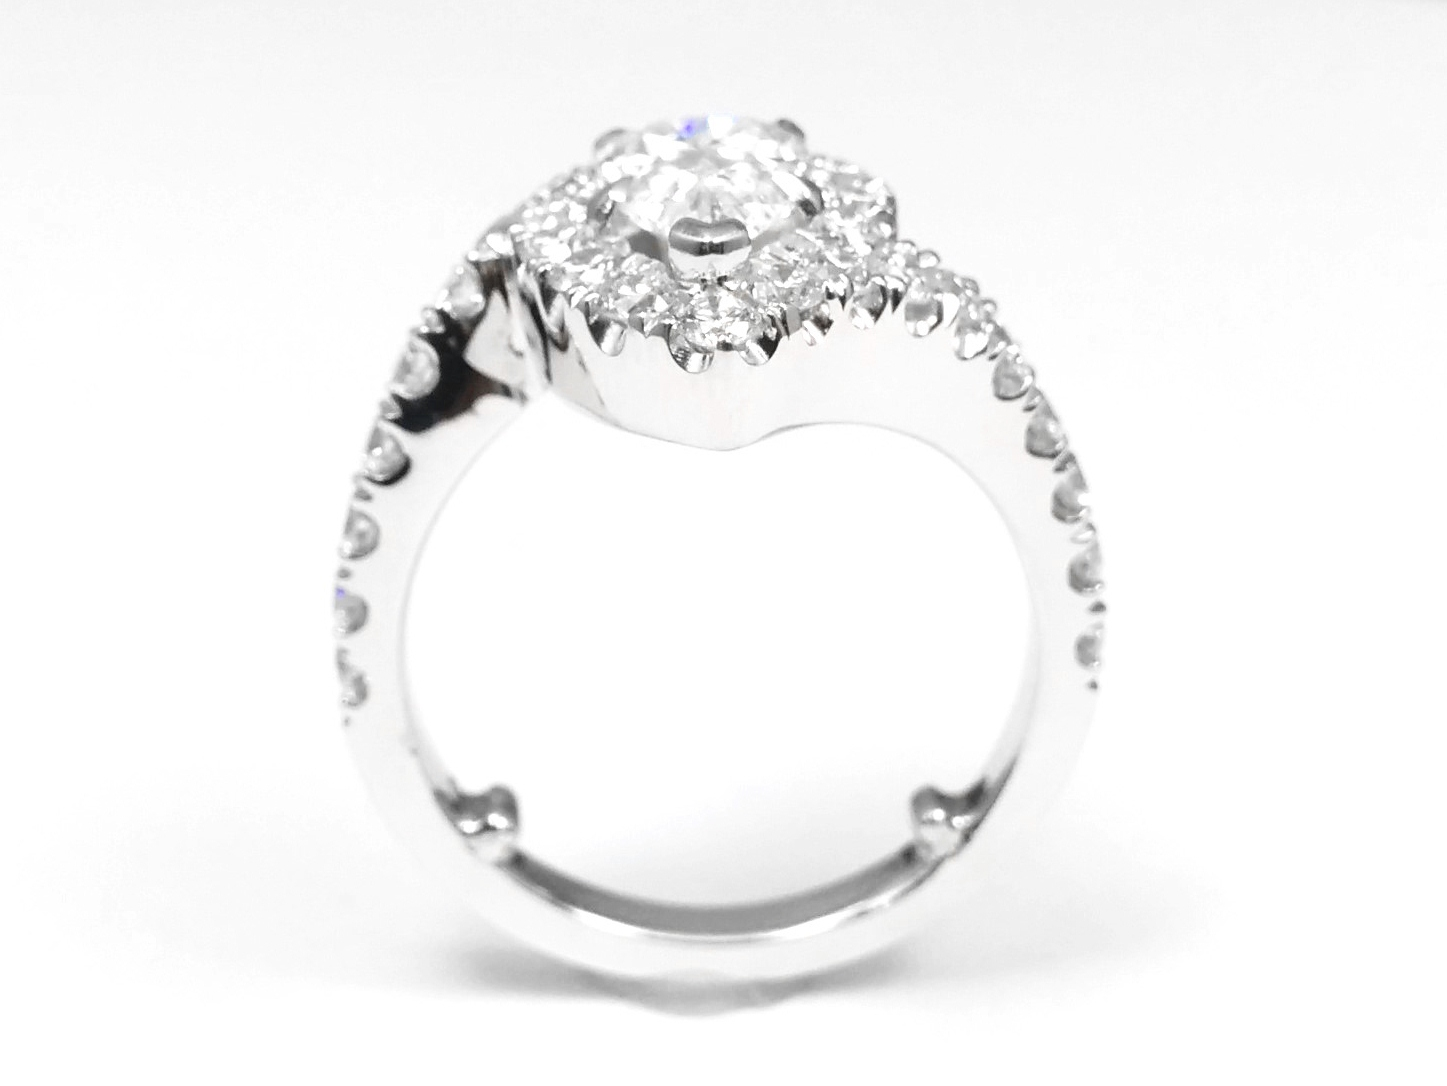 Pear Shape Diamond Pave Swirl Engagement Ring in 14K White Gold